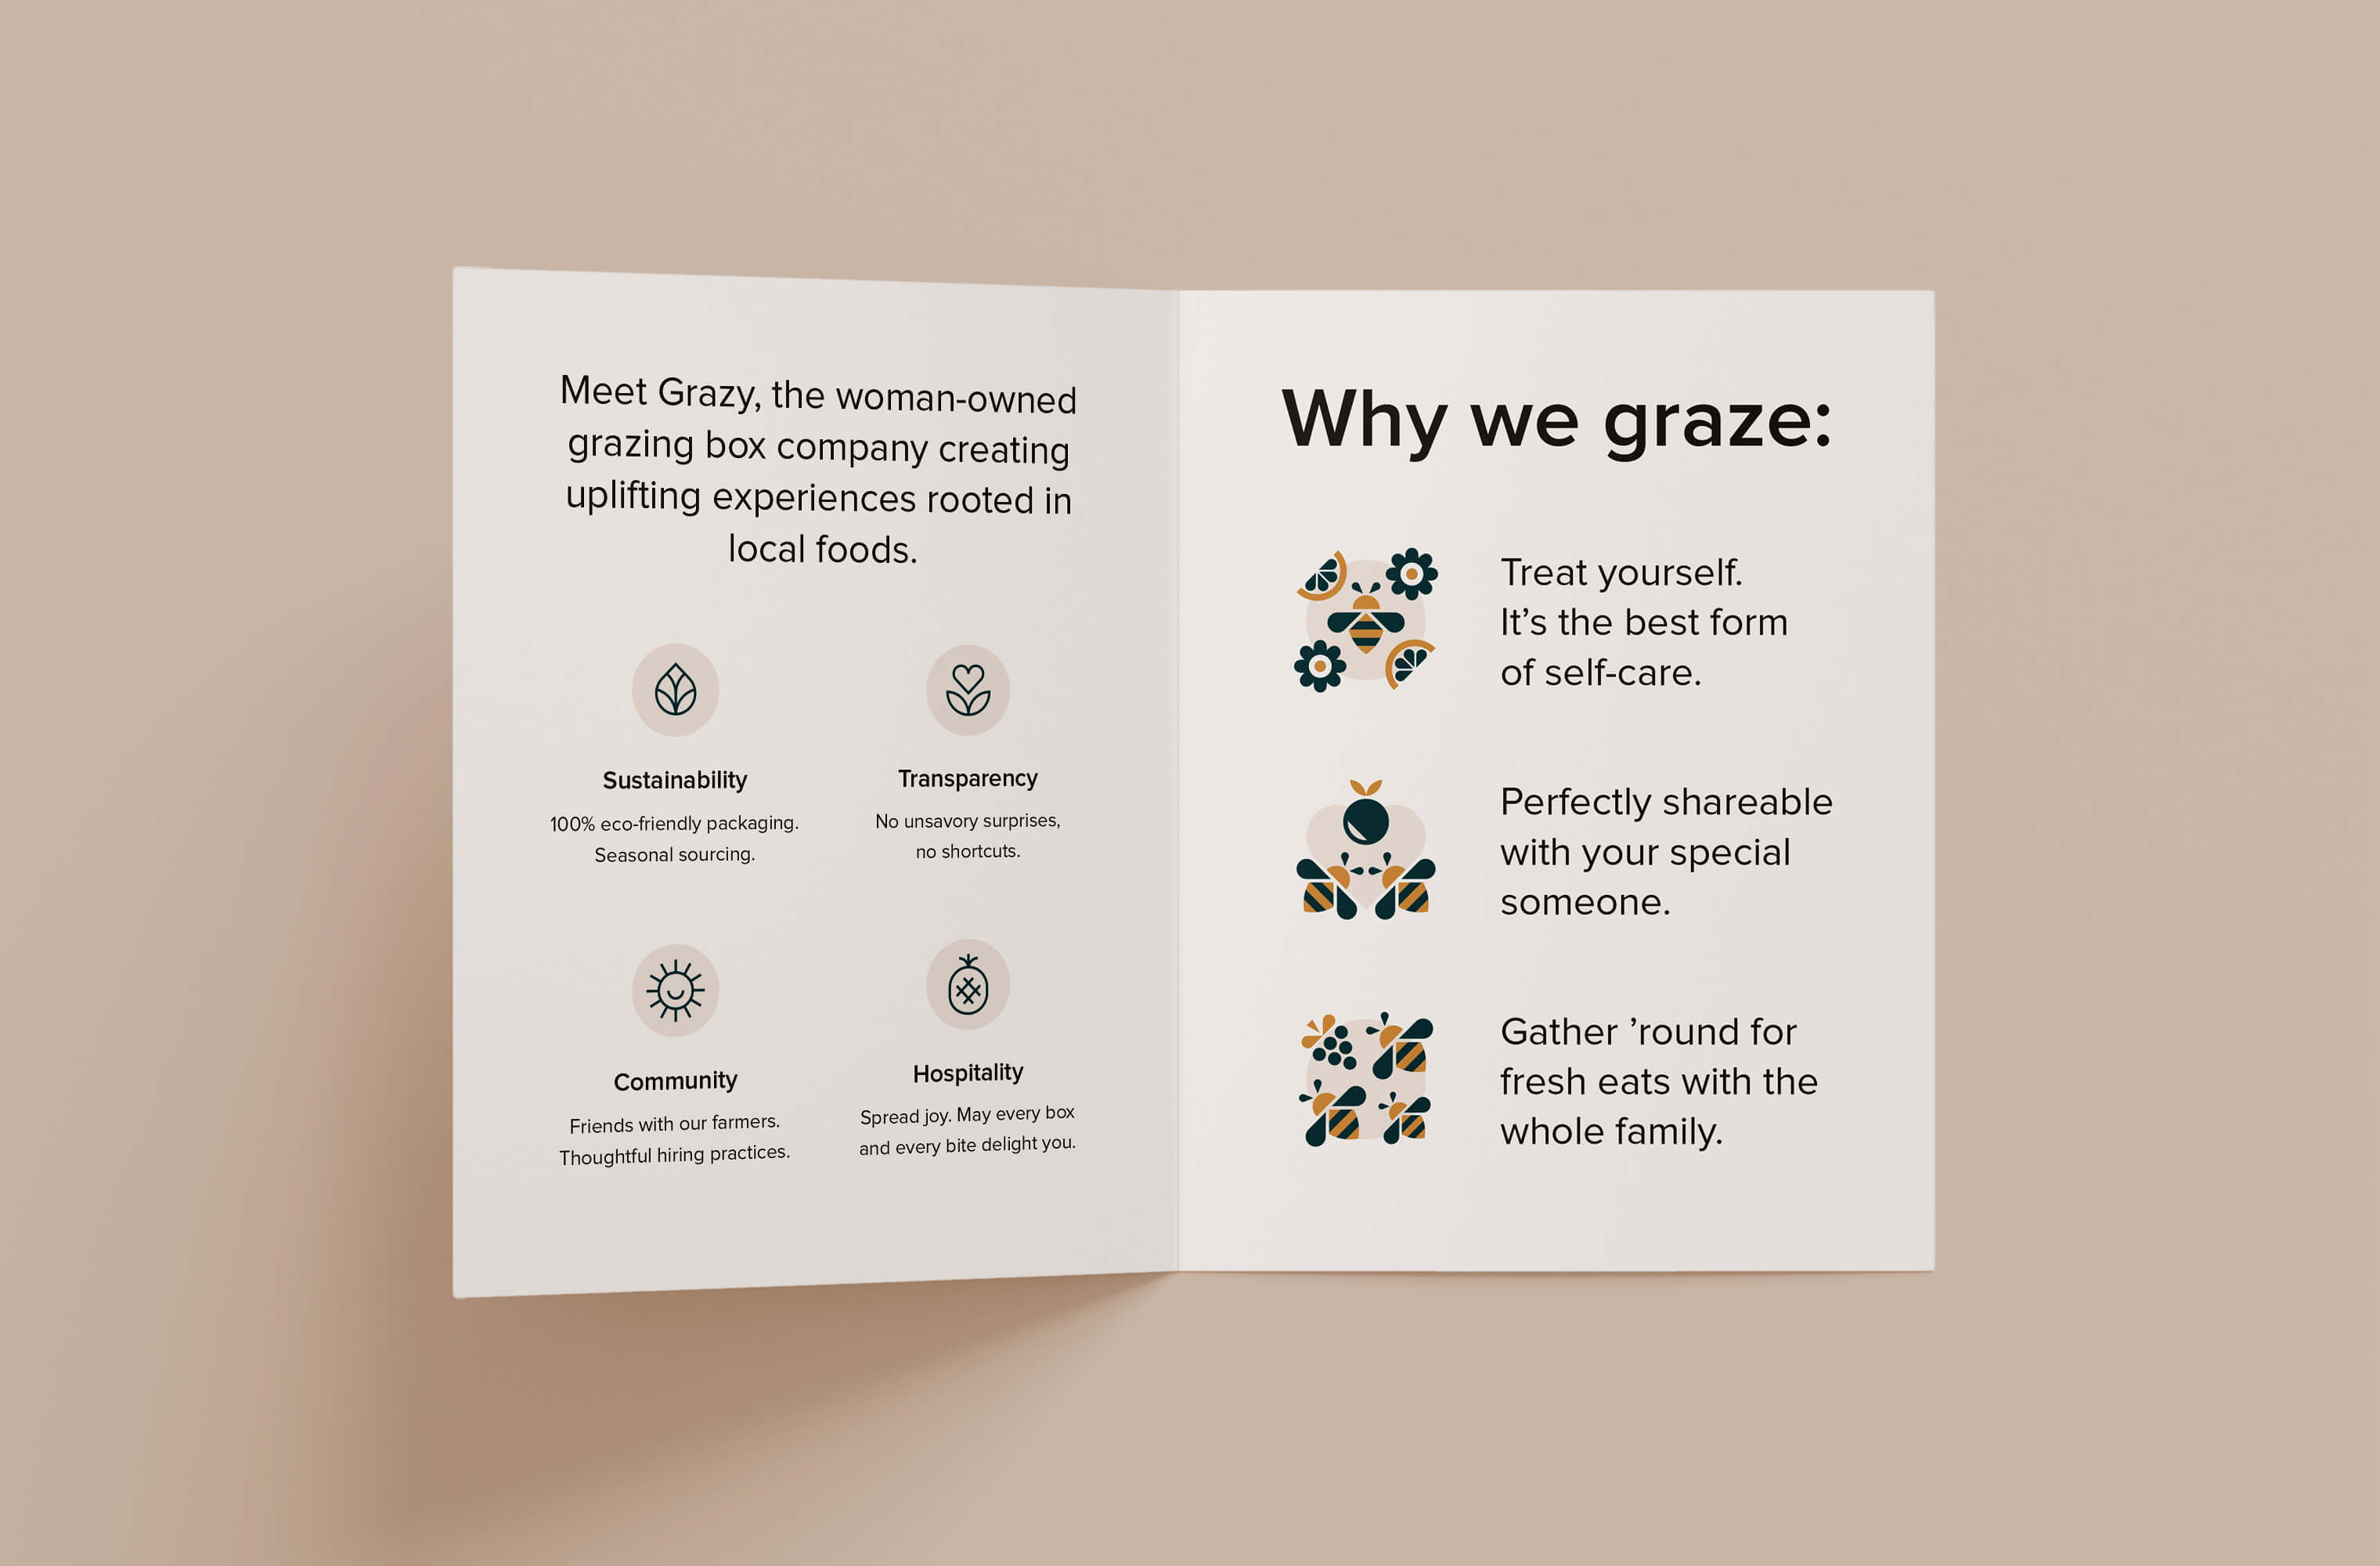 Inside spread of the bifold Grazy booklet